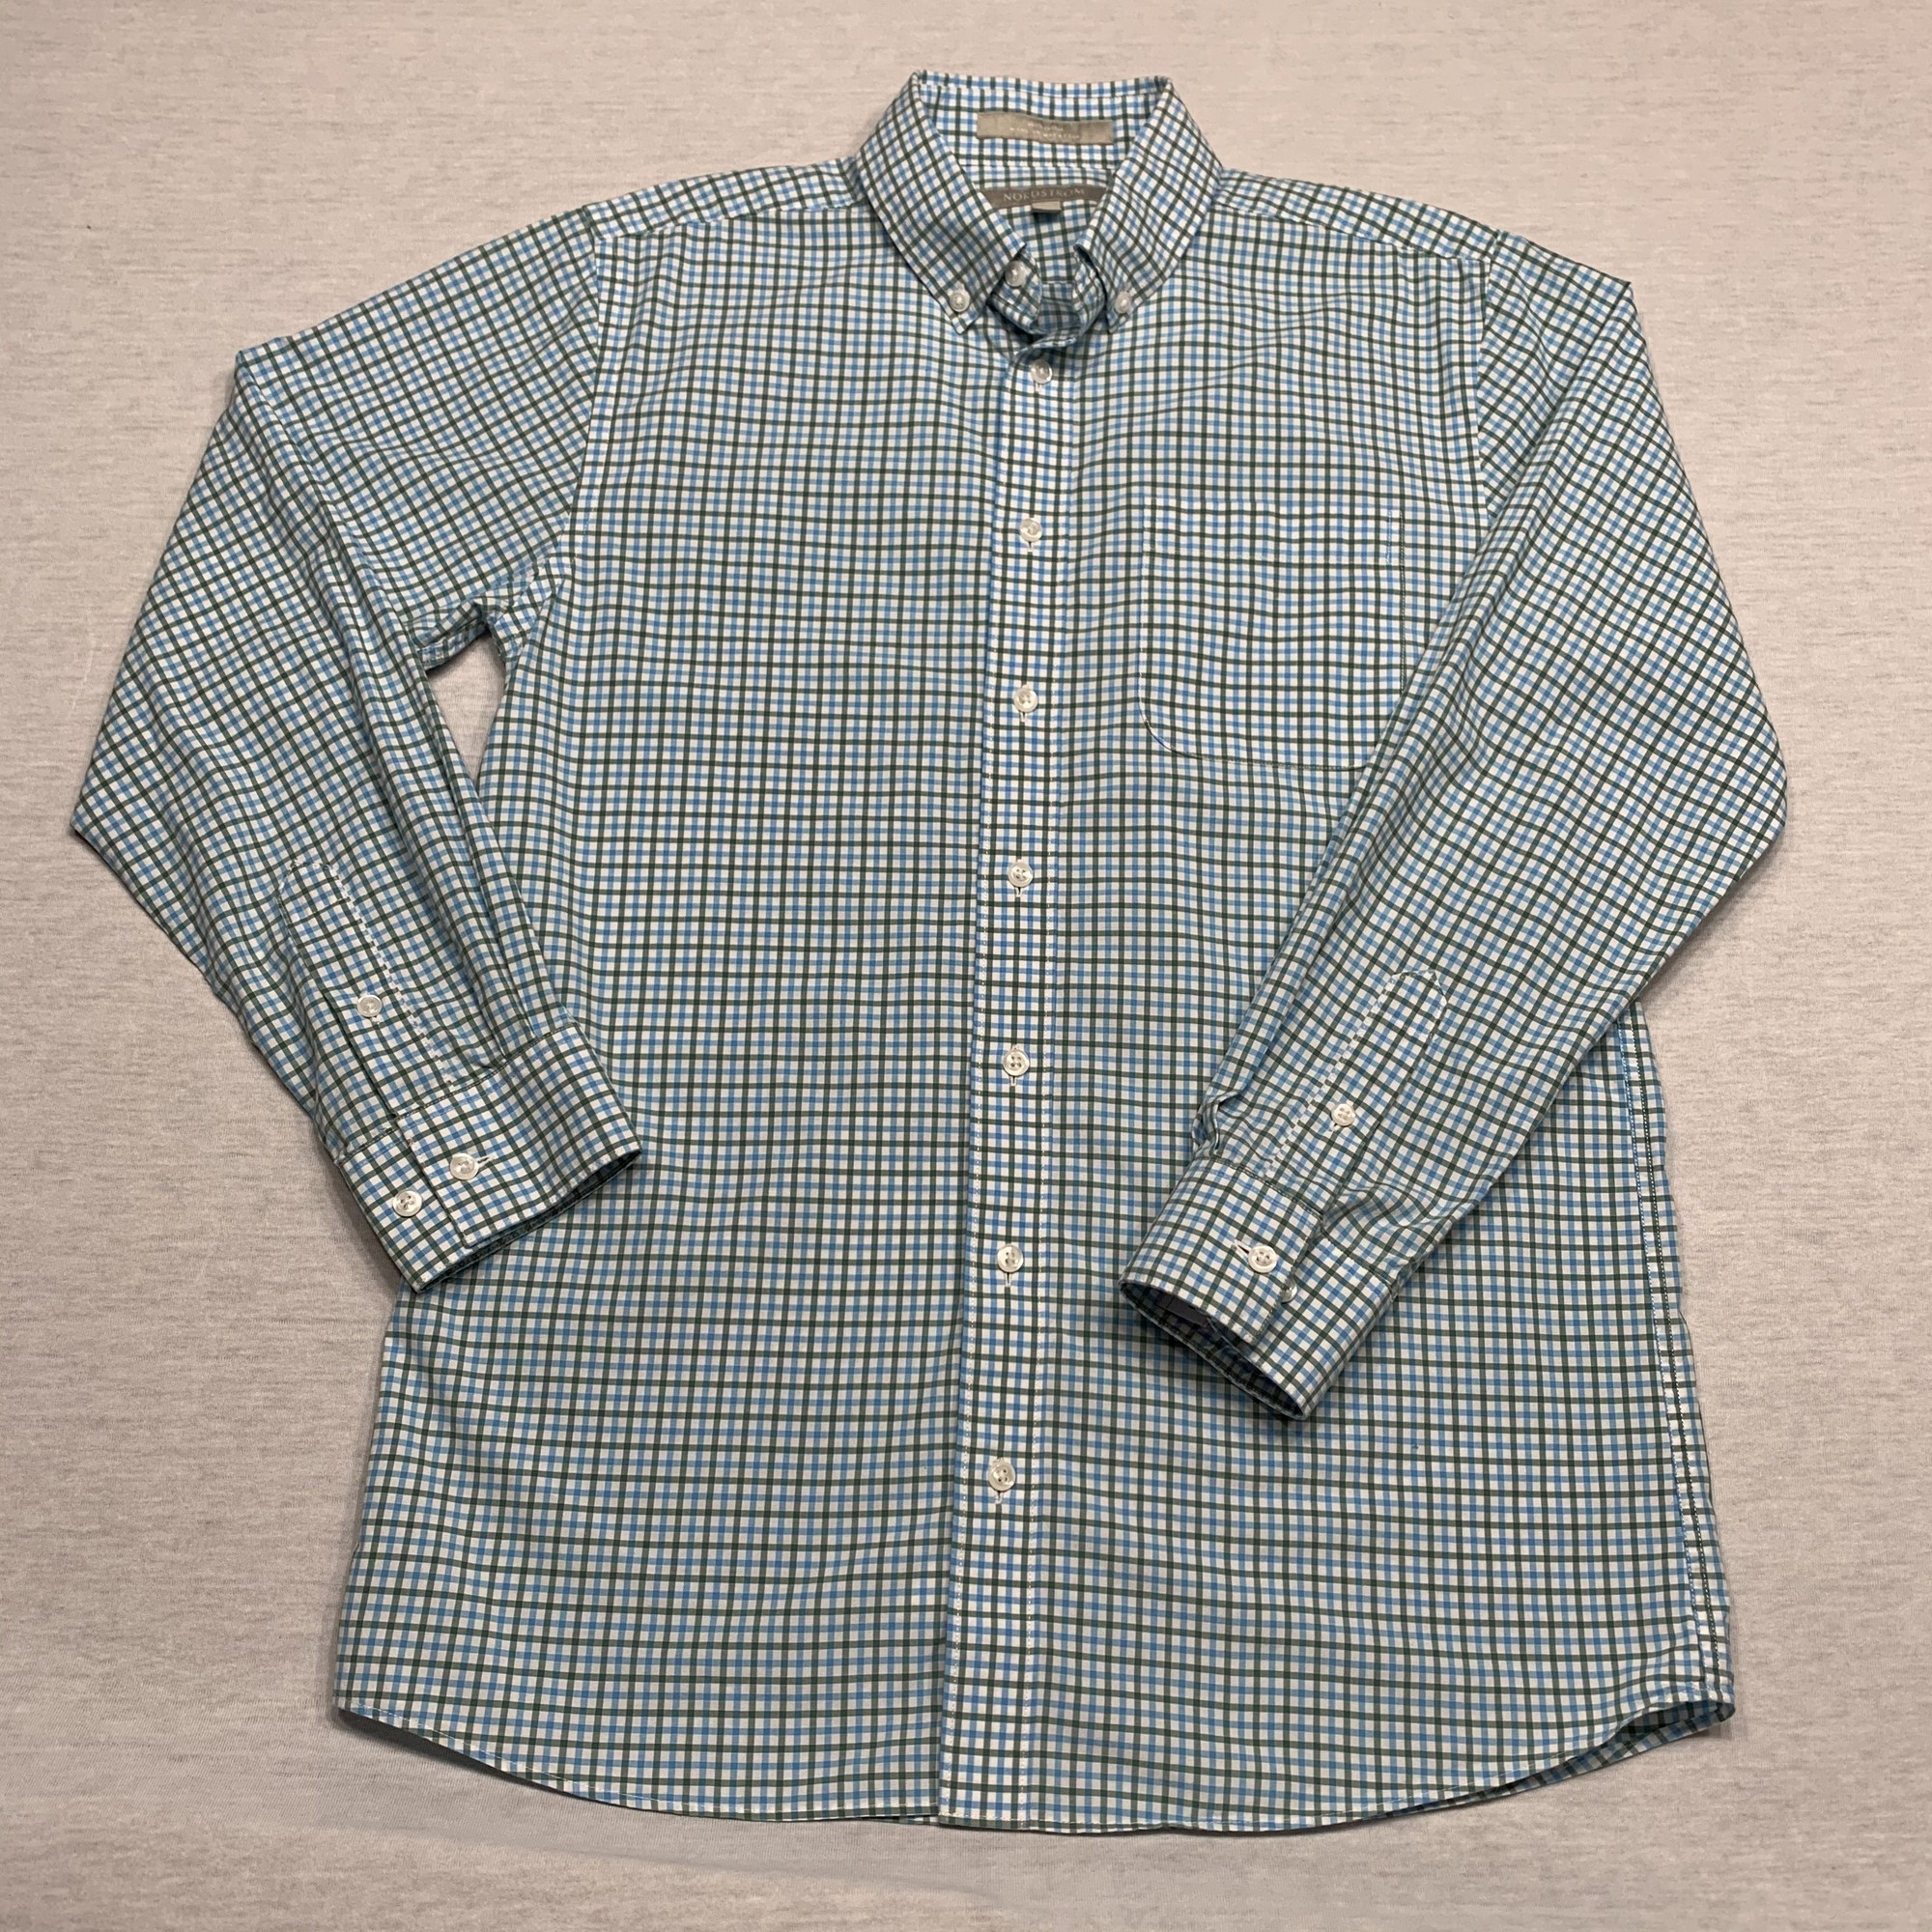 Plaid poplin shirt with button down collar & patch pocket